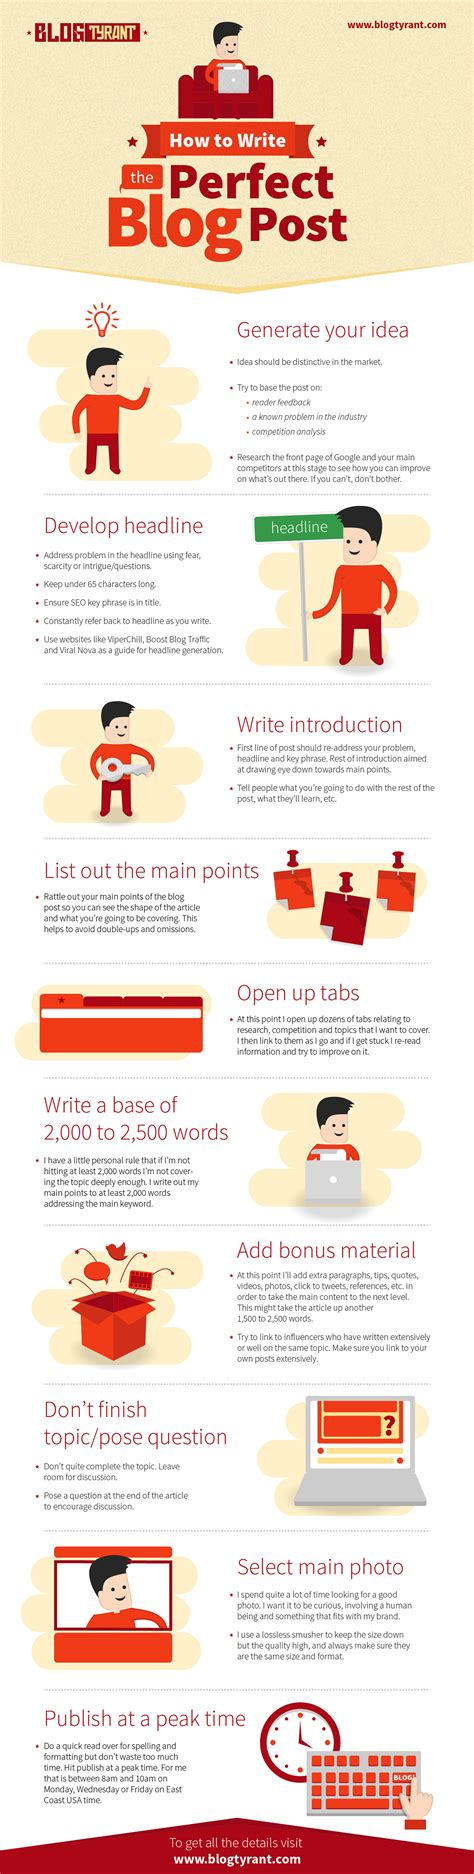 How To Write The Perfect Blog Post A Complete Guide To Copy